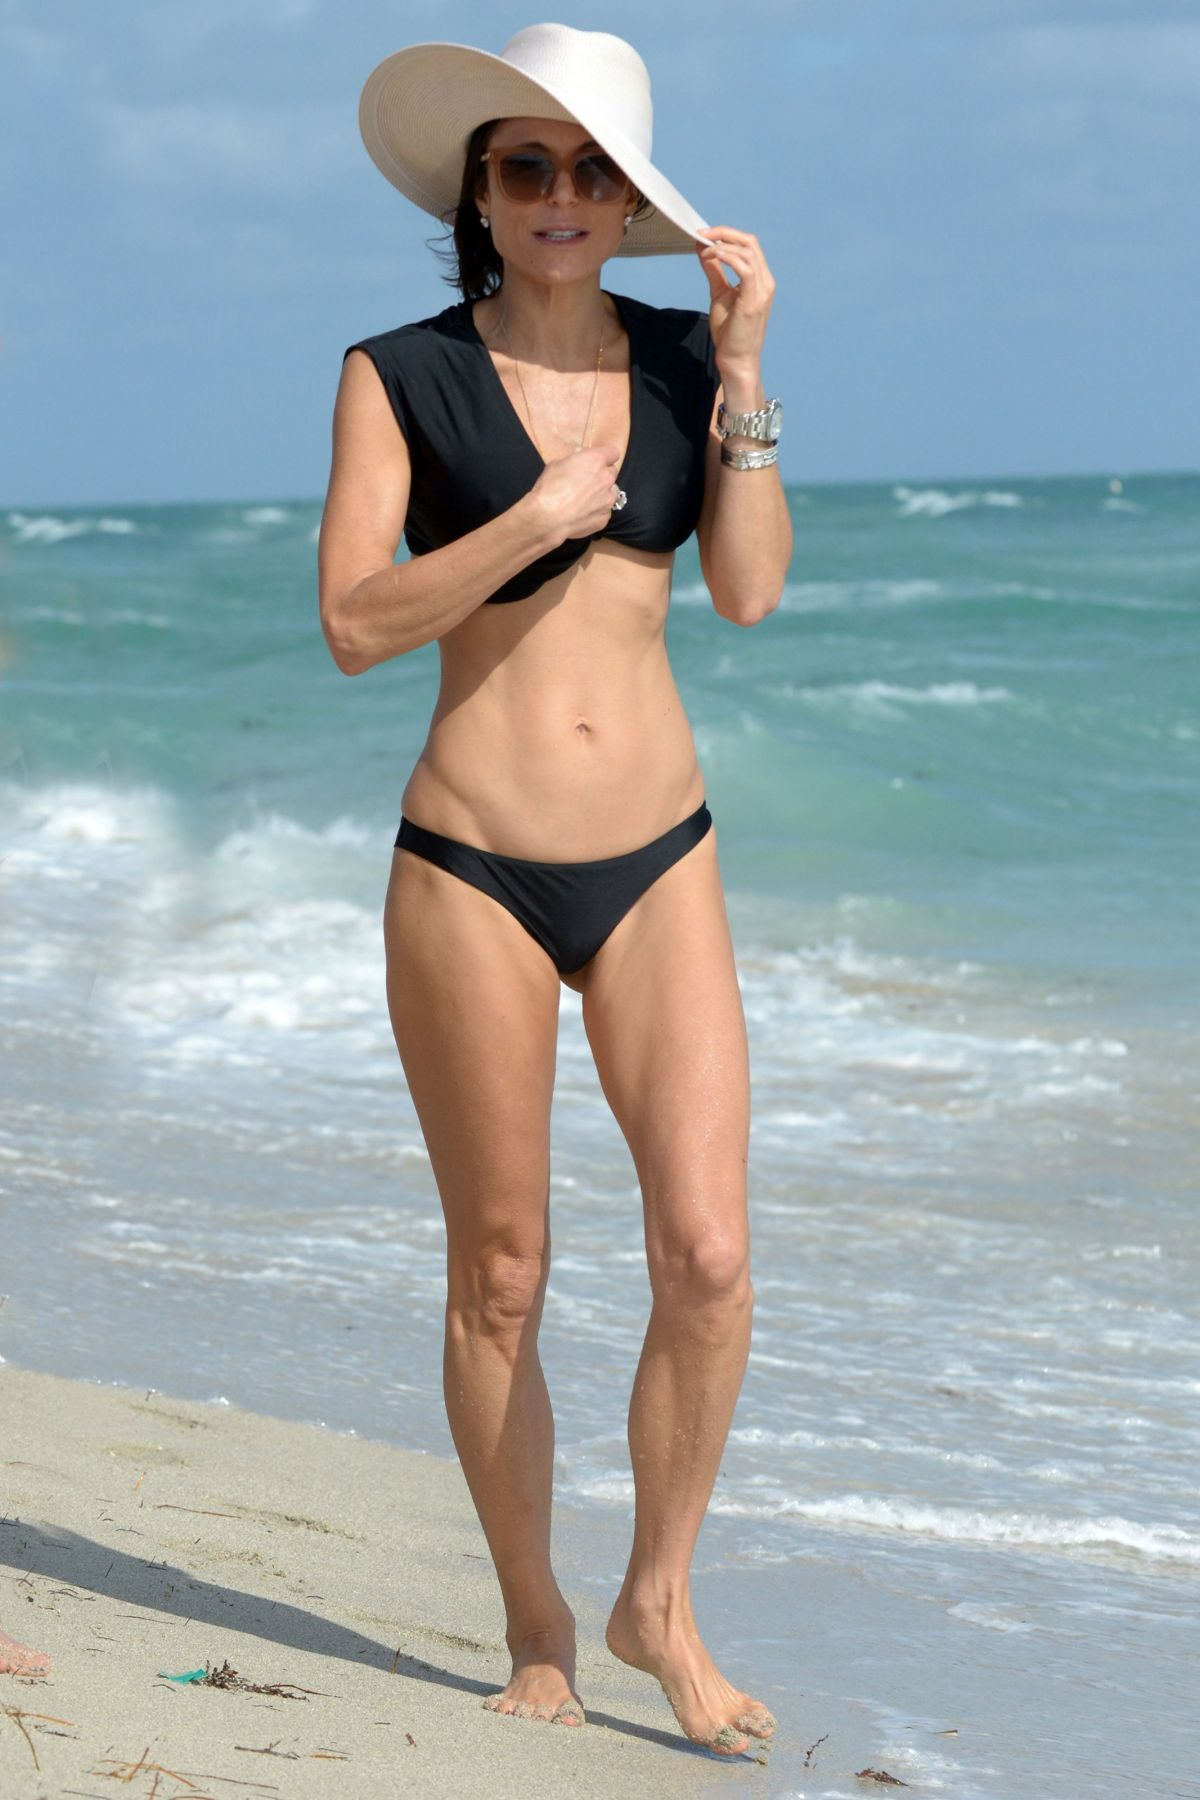 BETHENNY FRANKEL in Bikini on the Beach in Miami 12/05/2016   bethenny-frankel-in-bikini-on-the-beach-in-miami-12-05-2016_23